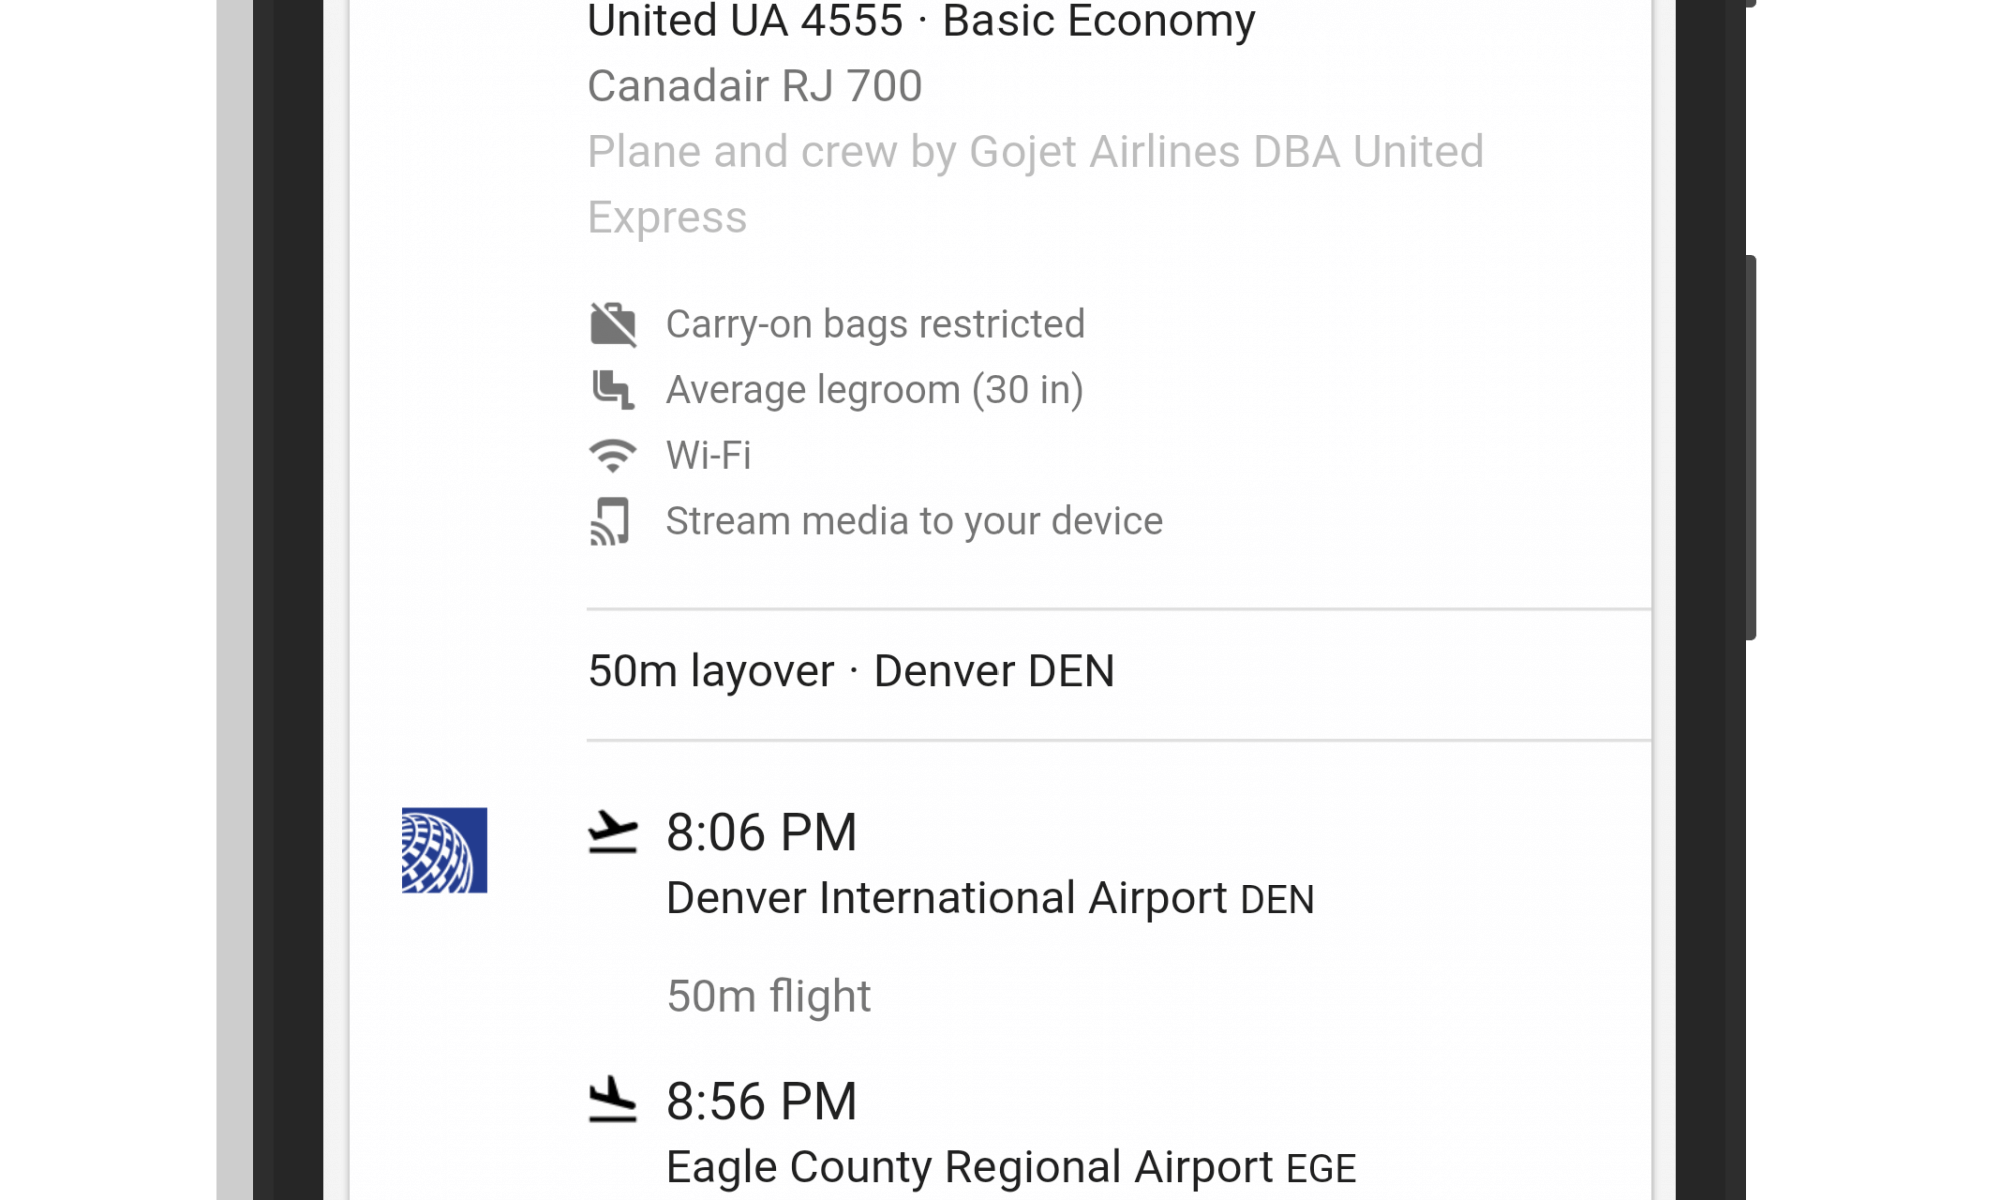 Basic Economy in Google Flights